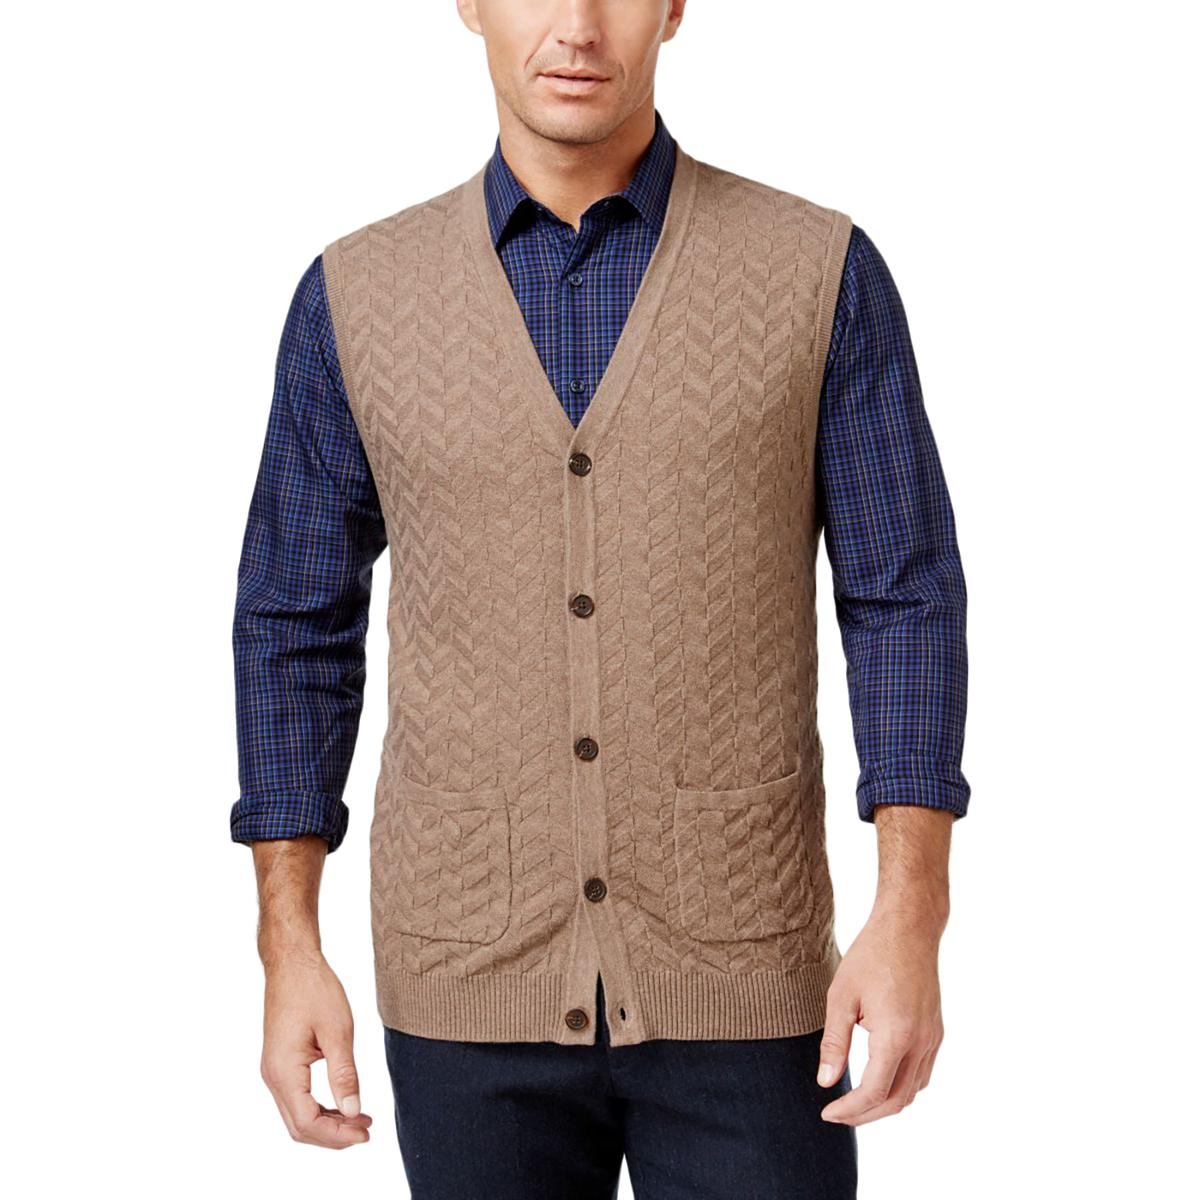 Tasso Elba 1601 Mens Knit Button-Up Sweater Vest BHFO | eBay